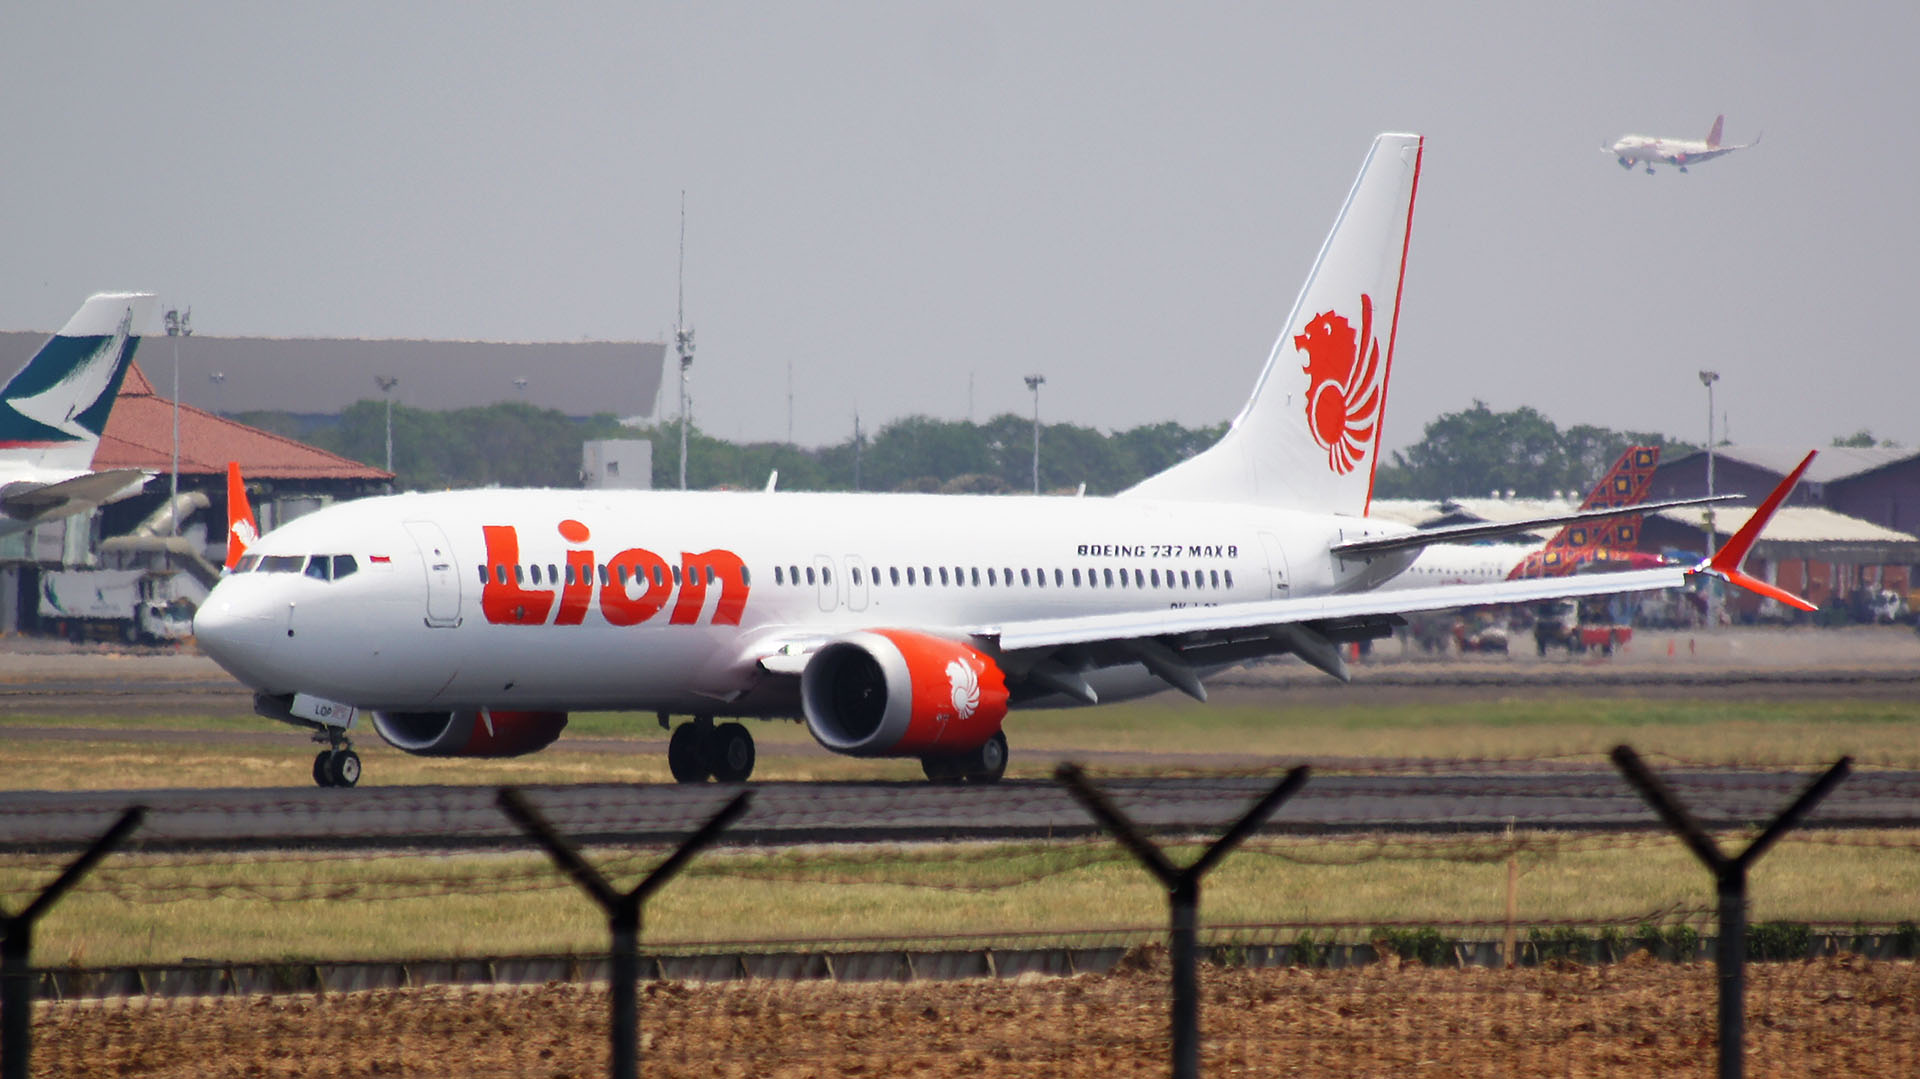 Un 737 MAX 8 de Lion Air, como el que se accidentó en octubre de 2018 (Wikipedia)